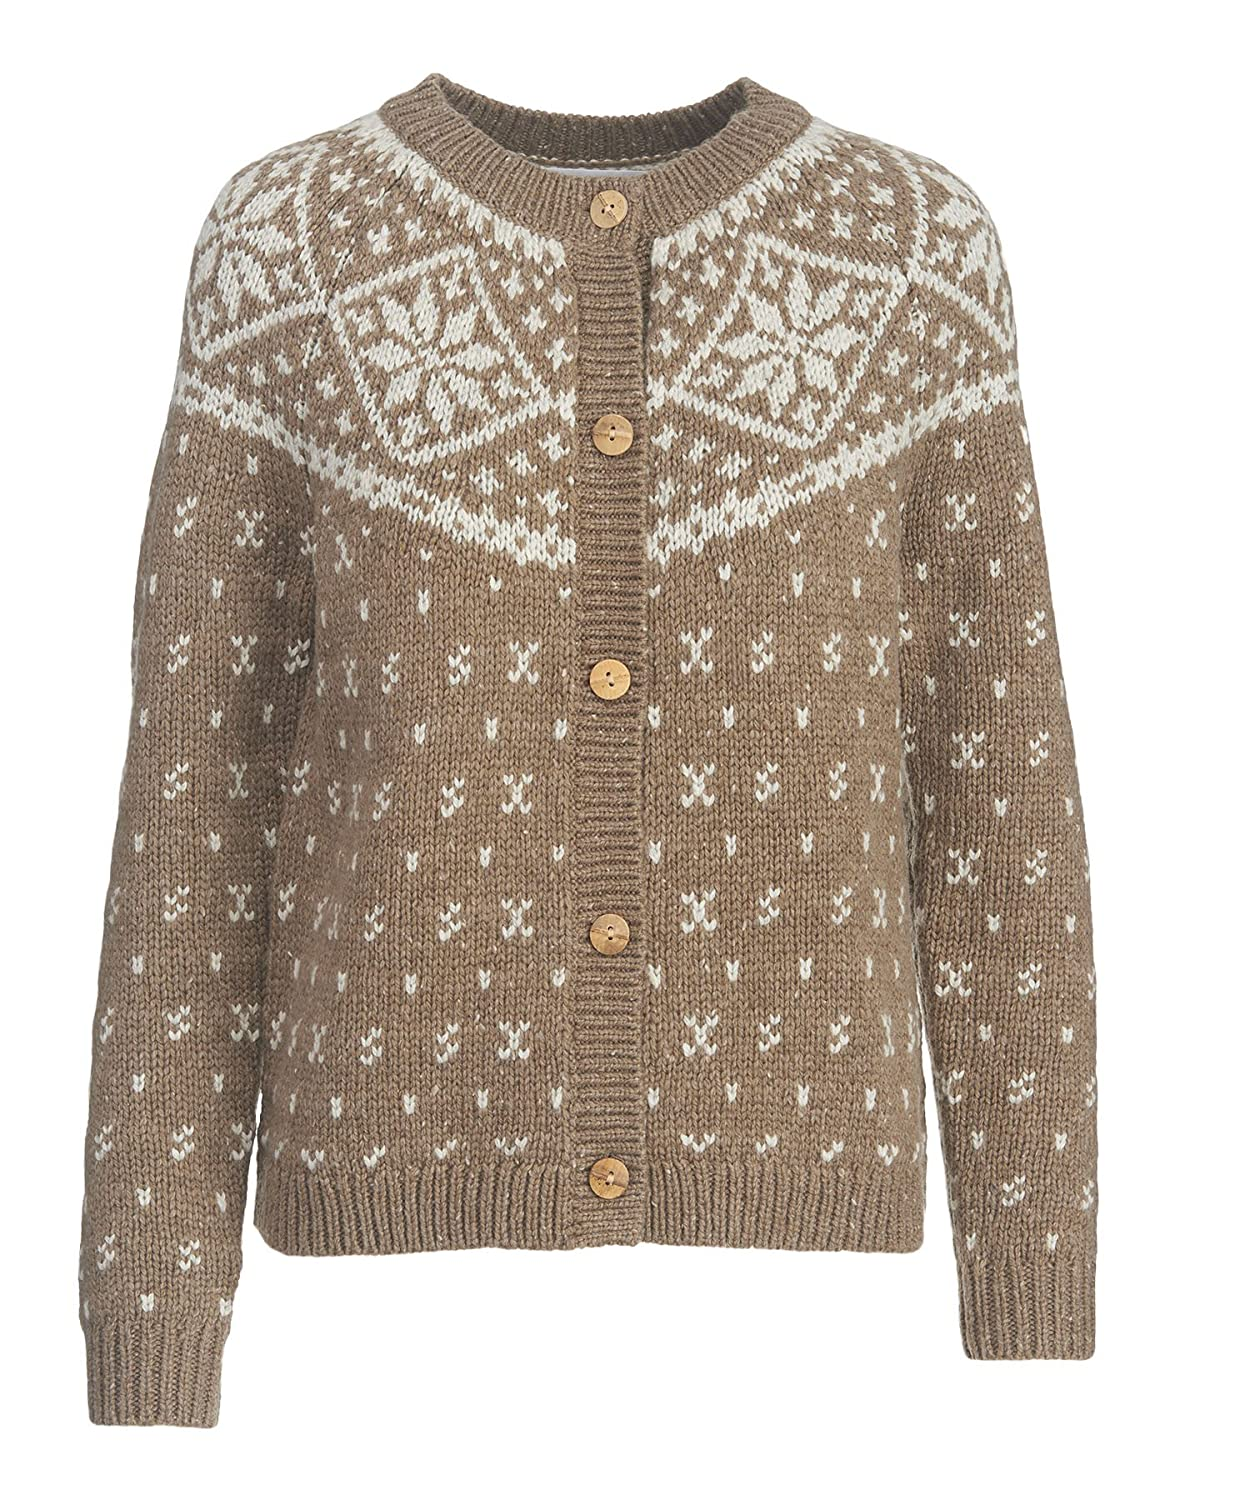 Woolrich Women's Snowfall Valley Snowflake Cardigan Sweater at ...